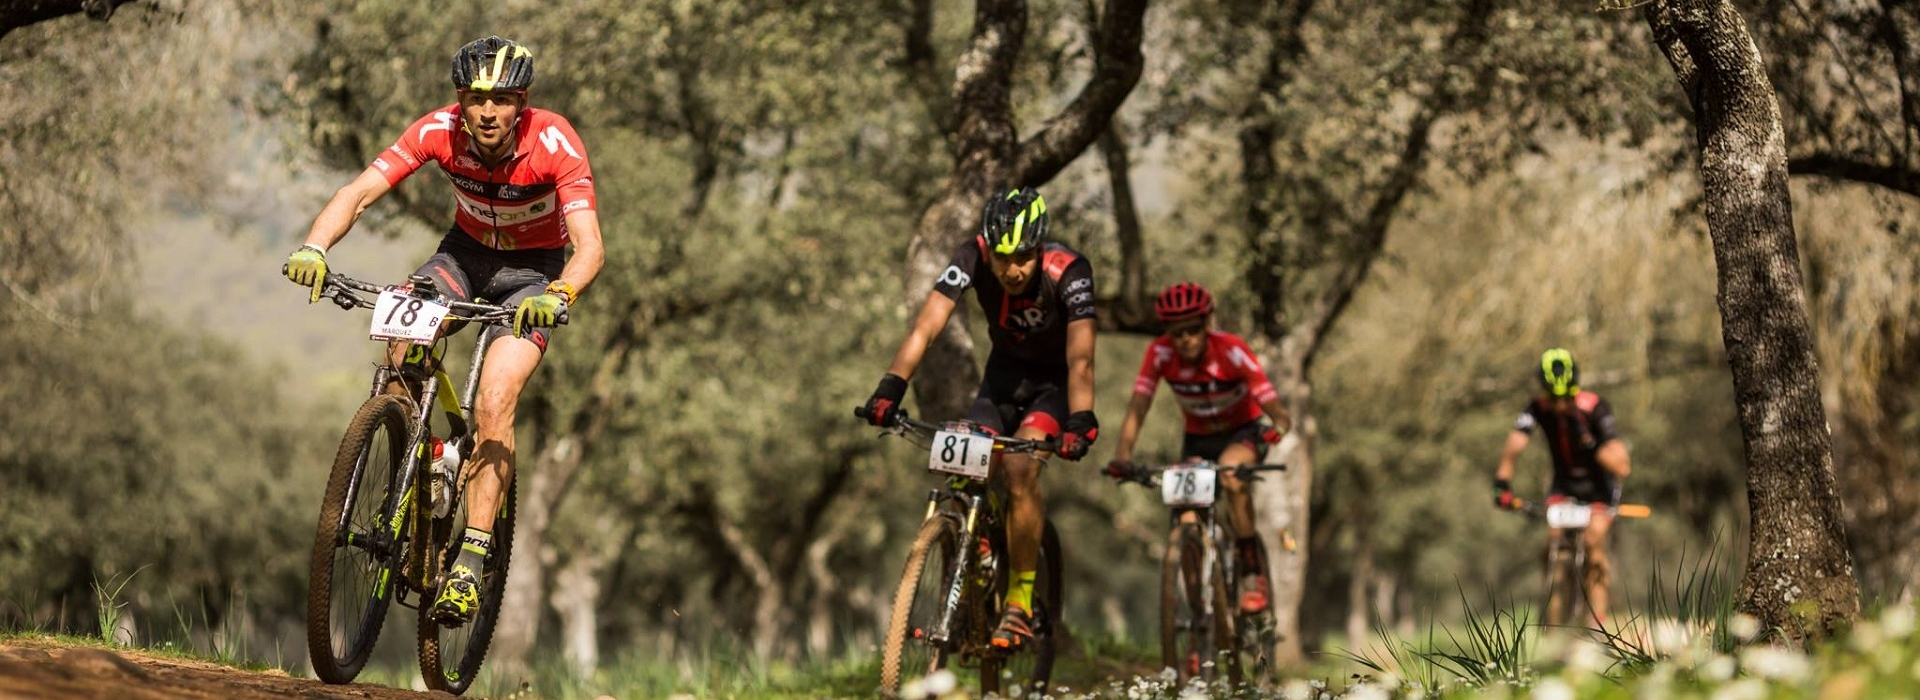 Jaén will host the start of Andalucía Bike Race presented by Caja Rural Jaén